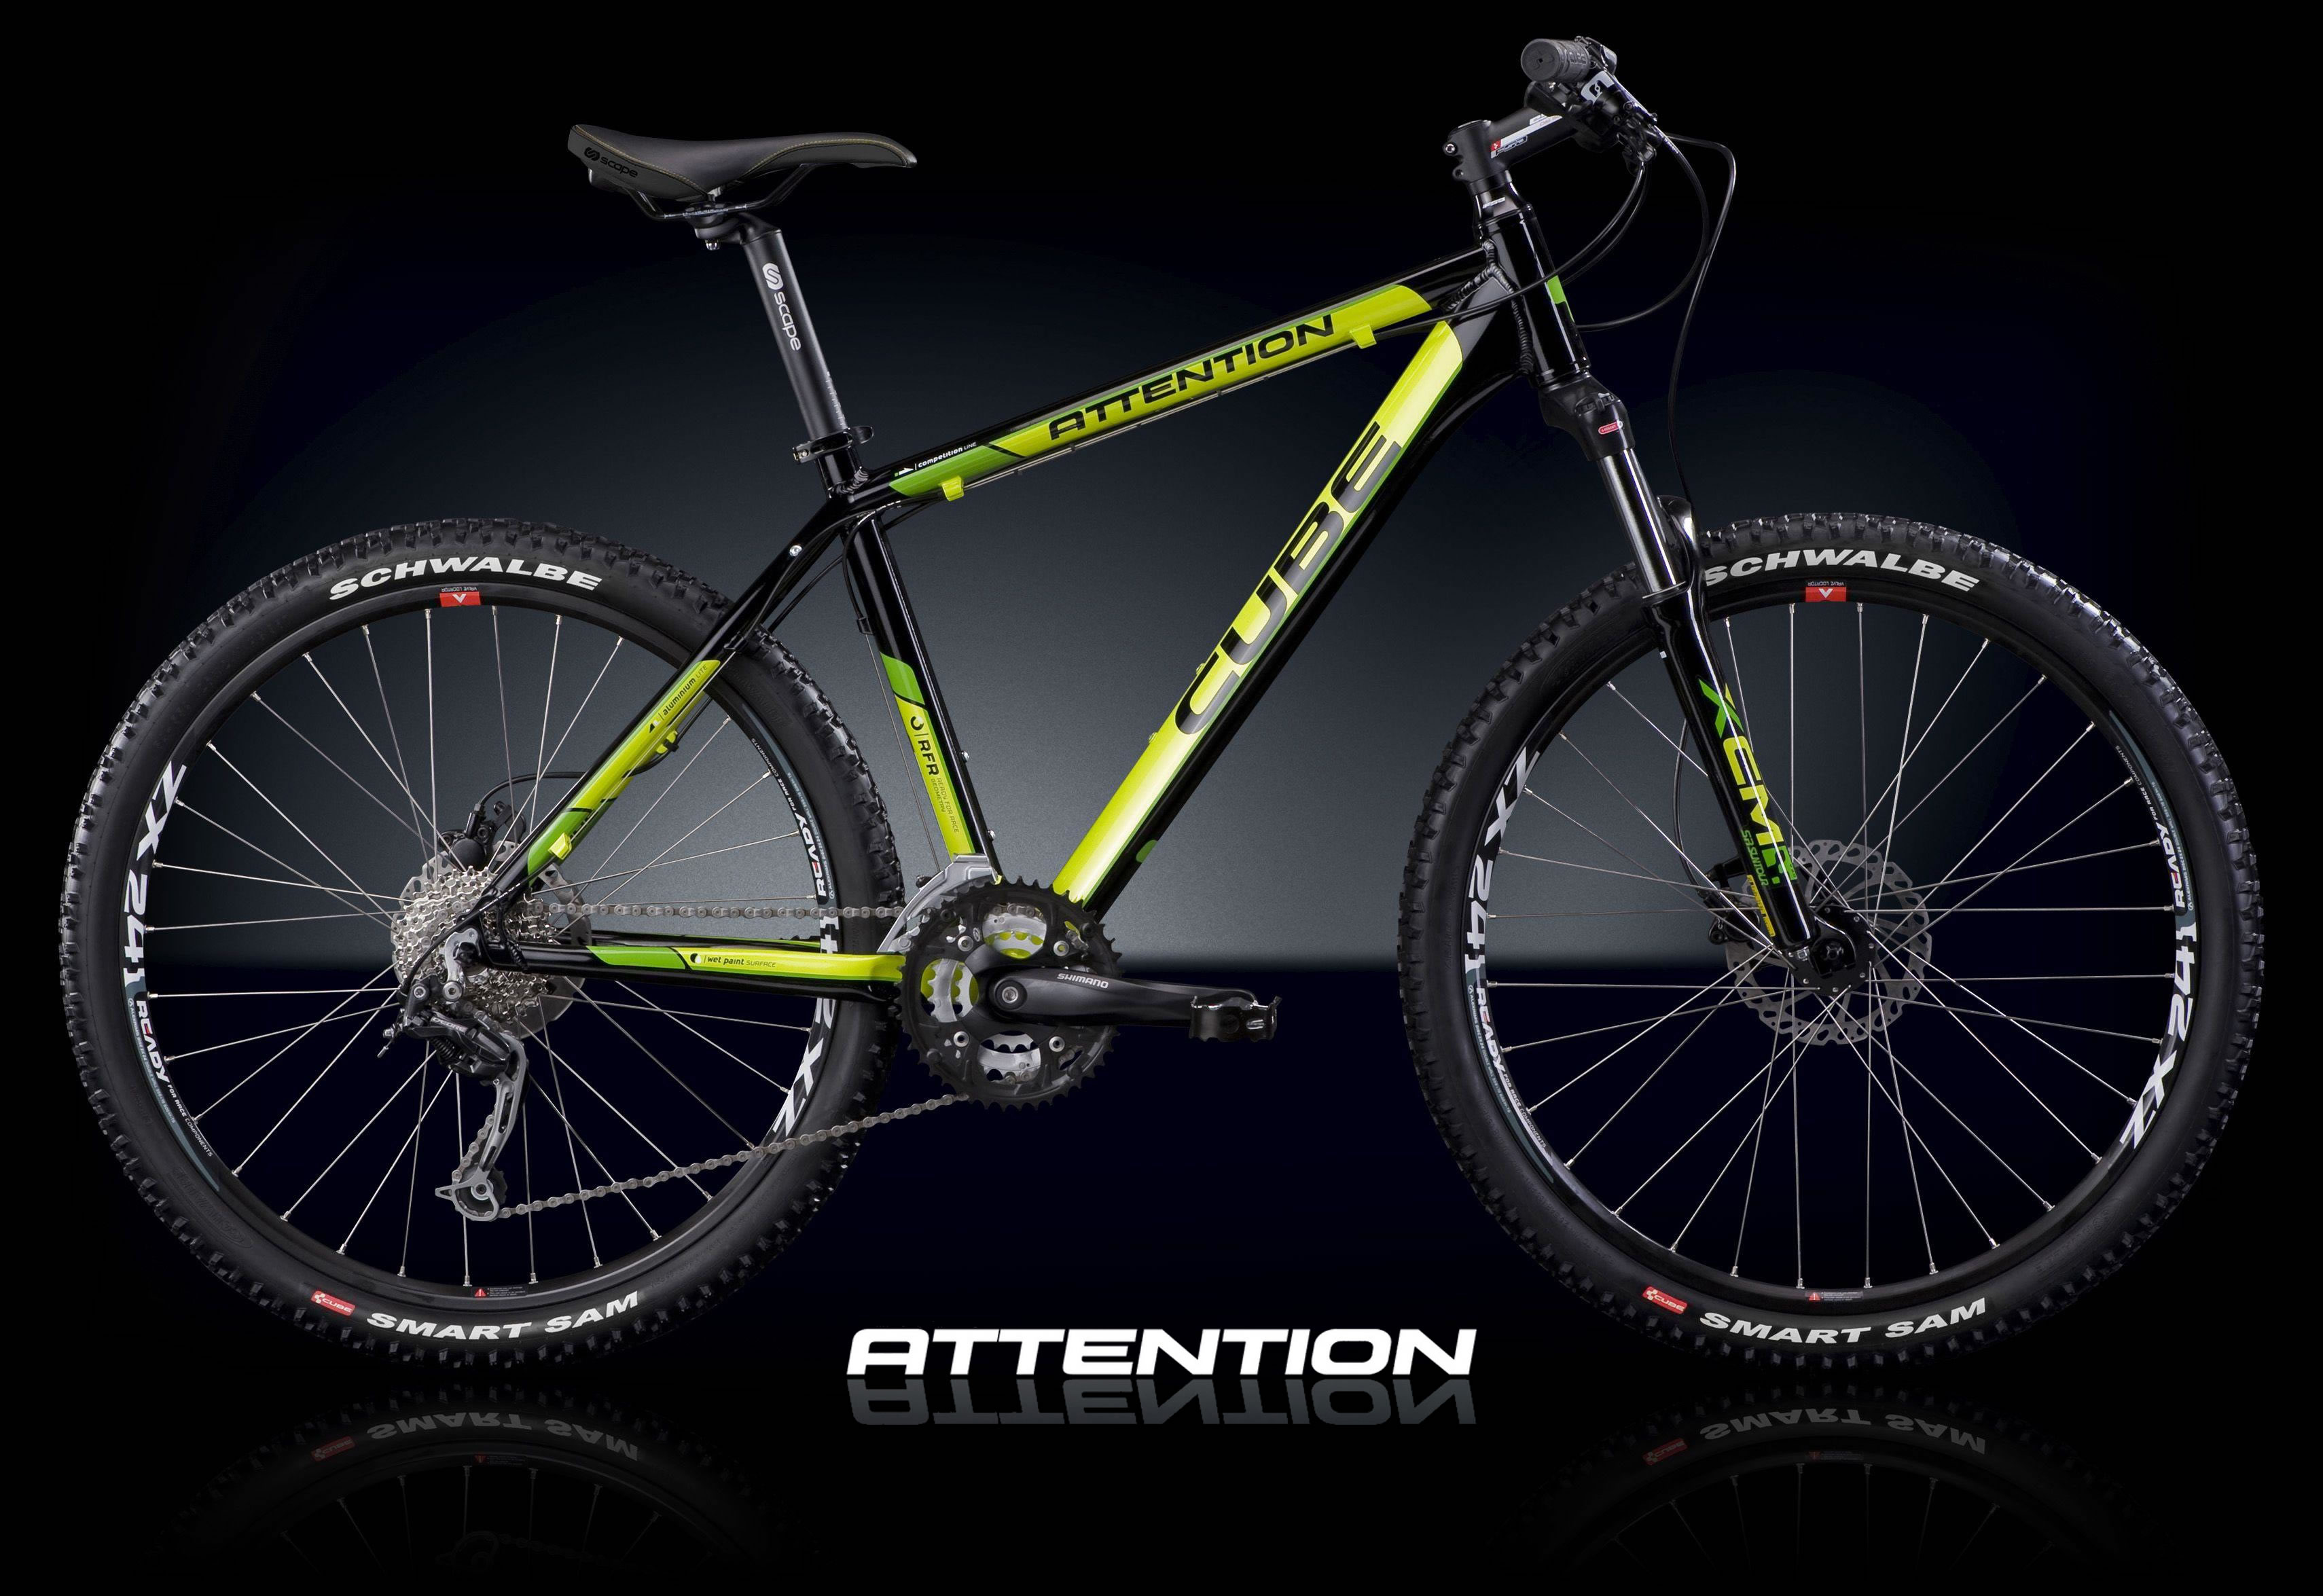 Mein Bike: Cube Attention 20- Mountainbike Forum